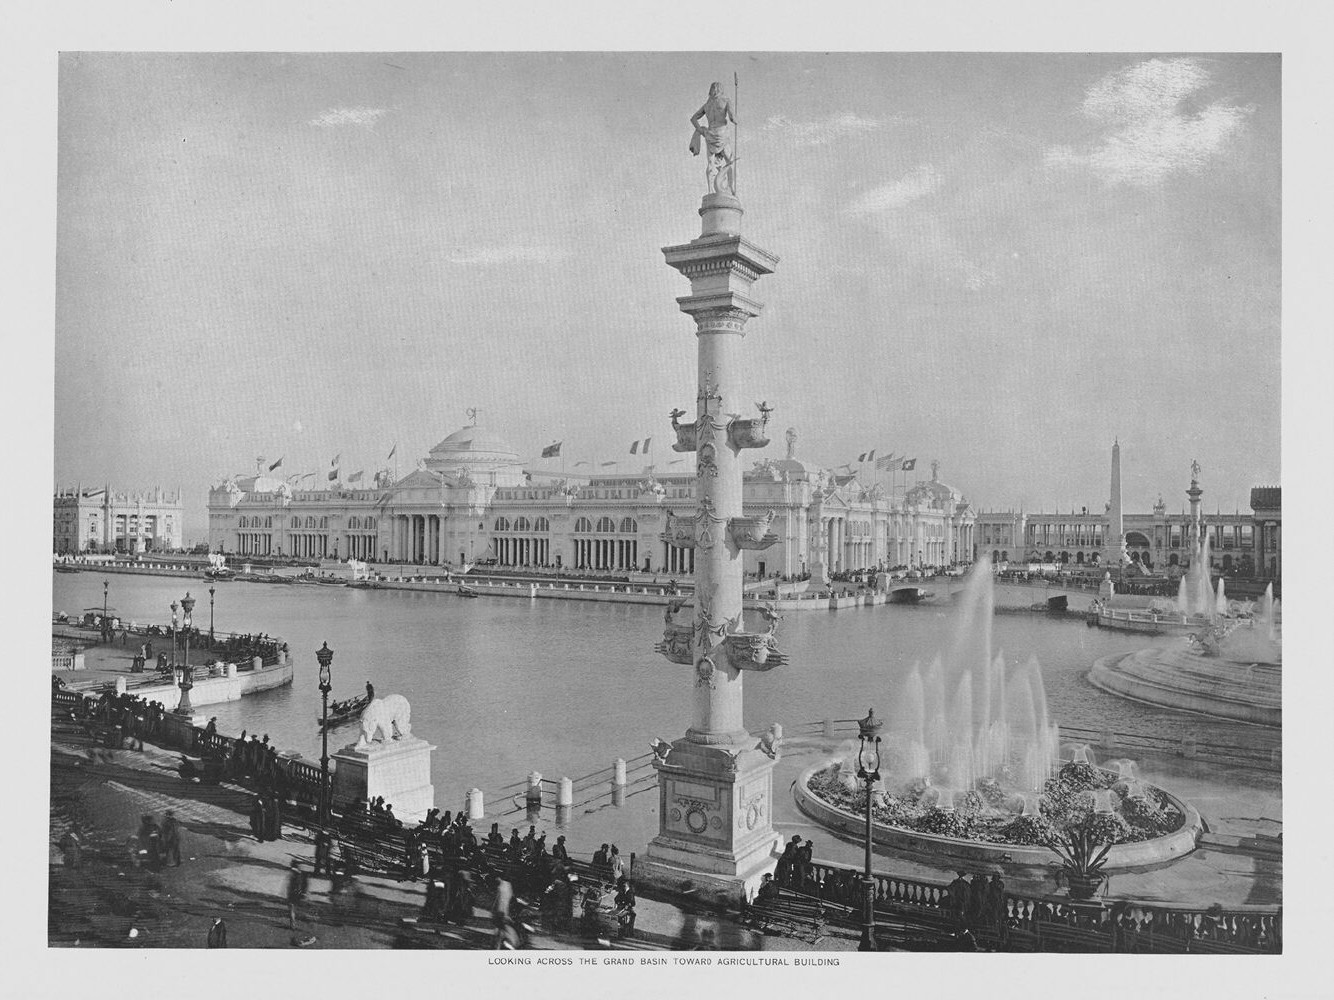 What is an essay that was written about the chicogo world's fair held in 1893